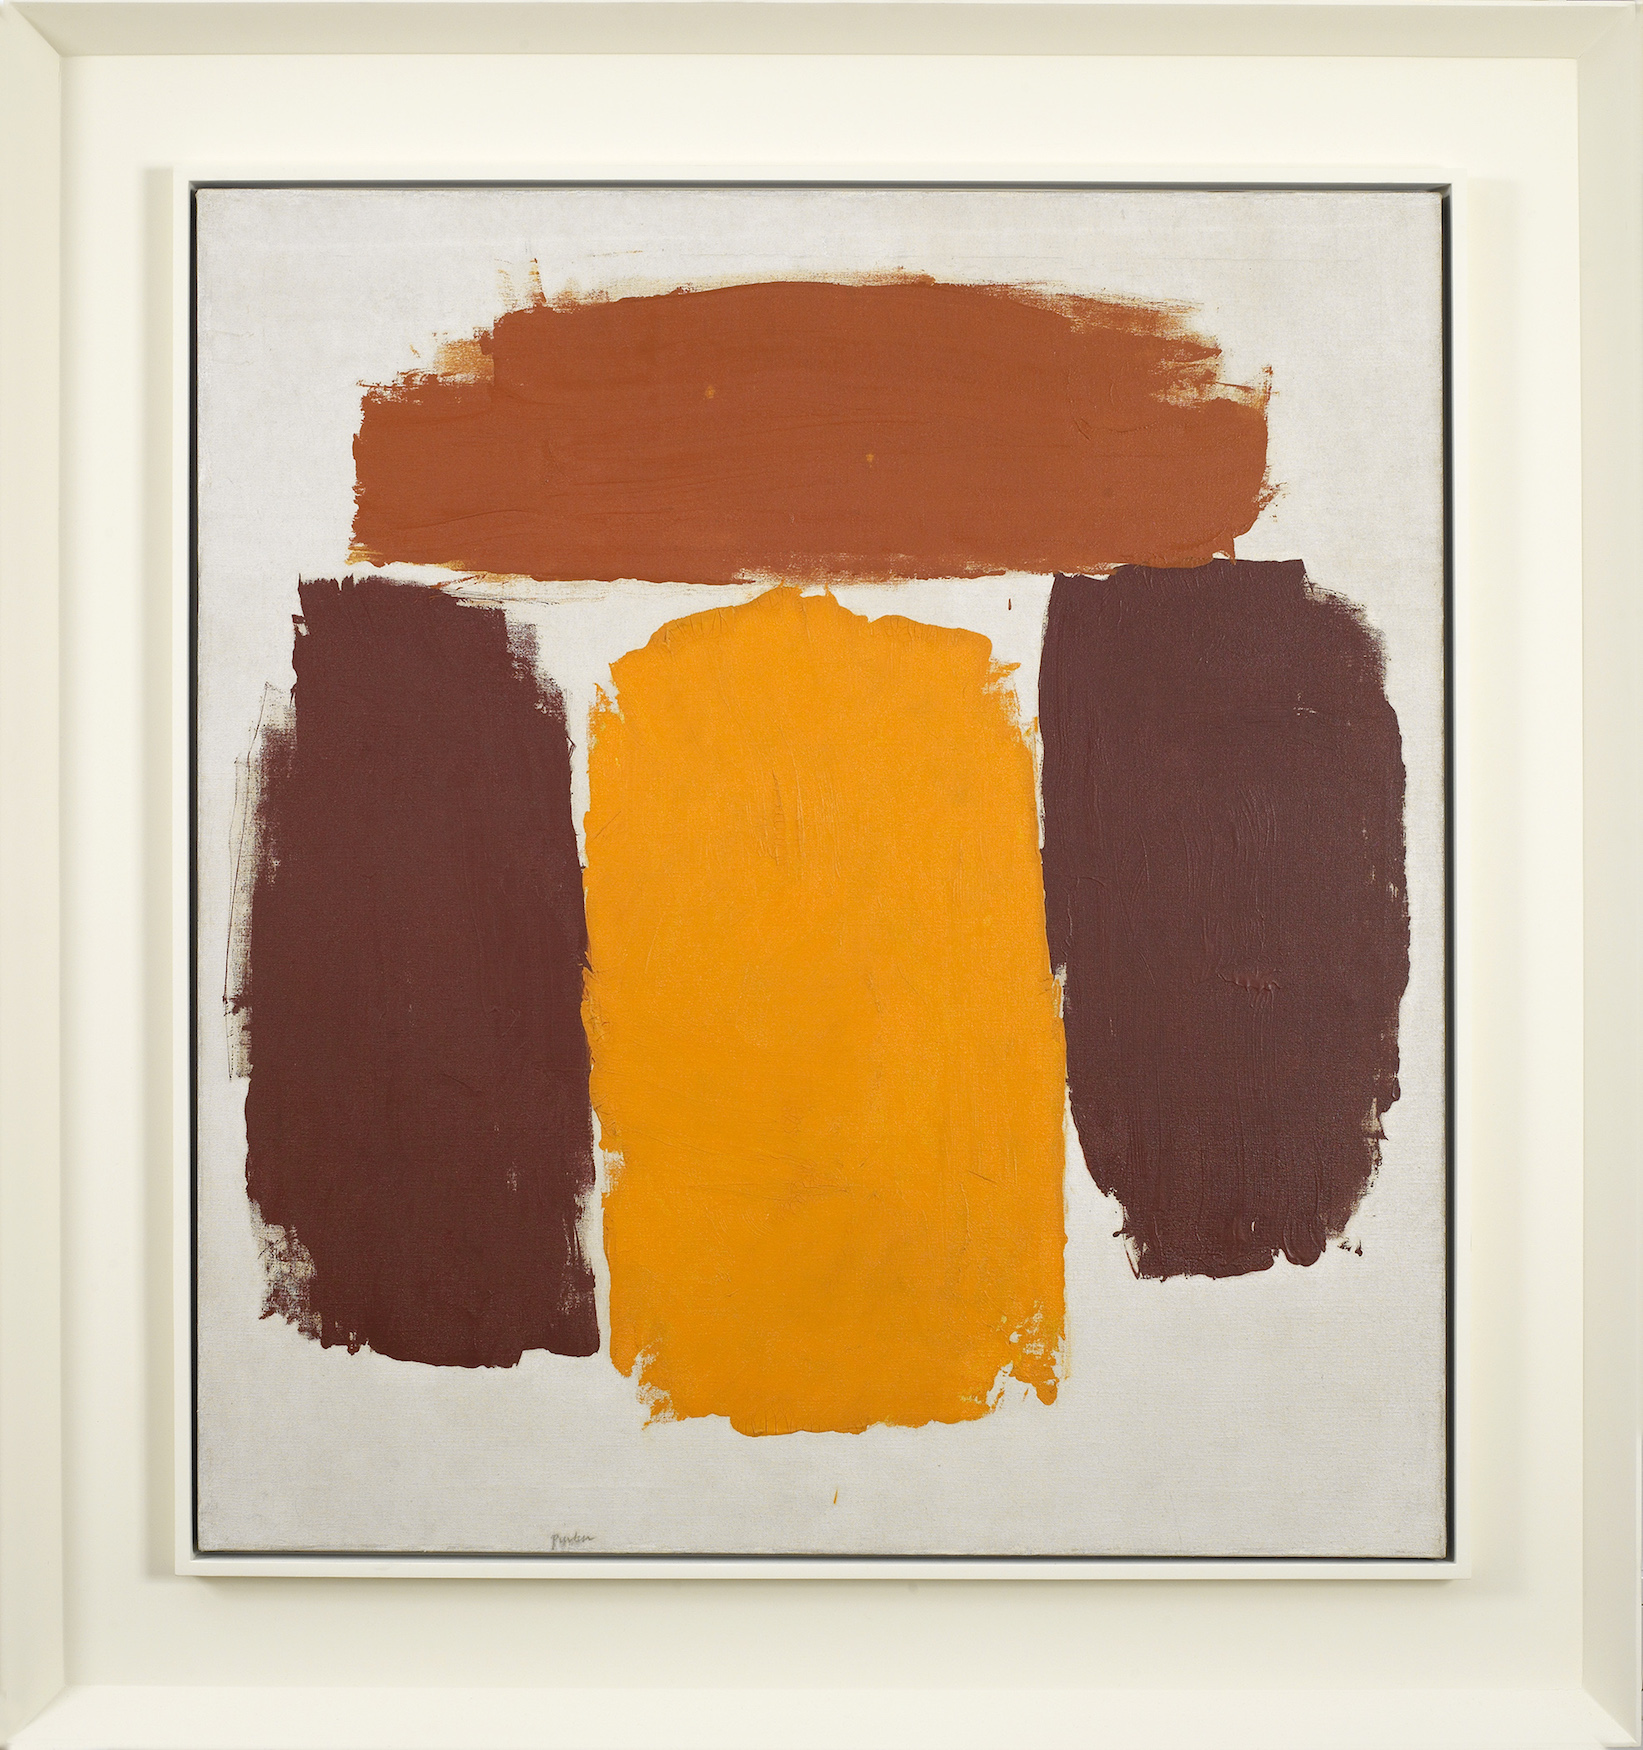 Ray Parker,  Untitled , 1963, oil on canvas, 34 x 31 inches